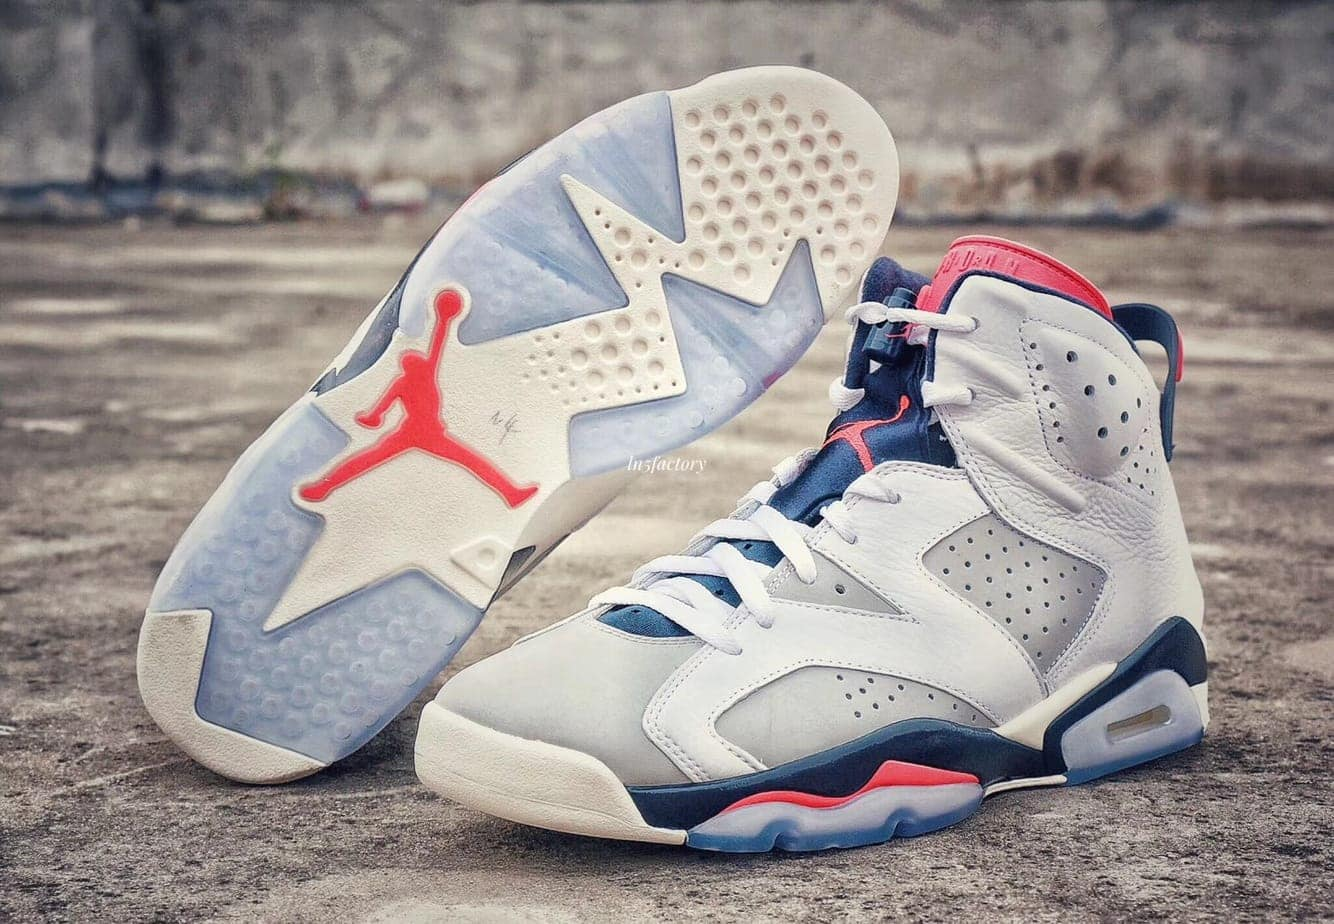 2540f4603f7a ... Retro As  release info on ac4d4 94d9c Air Jordan 6 Tinker Release Date  October 6th